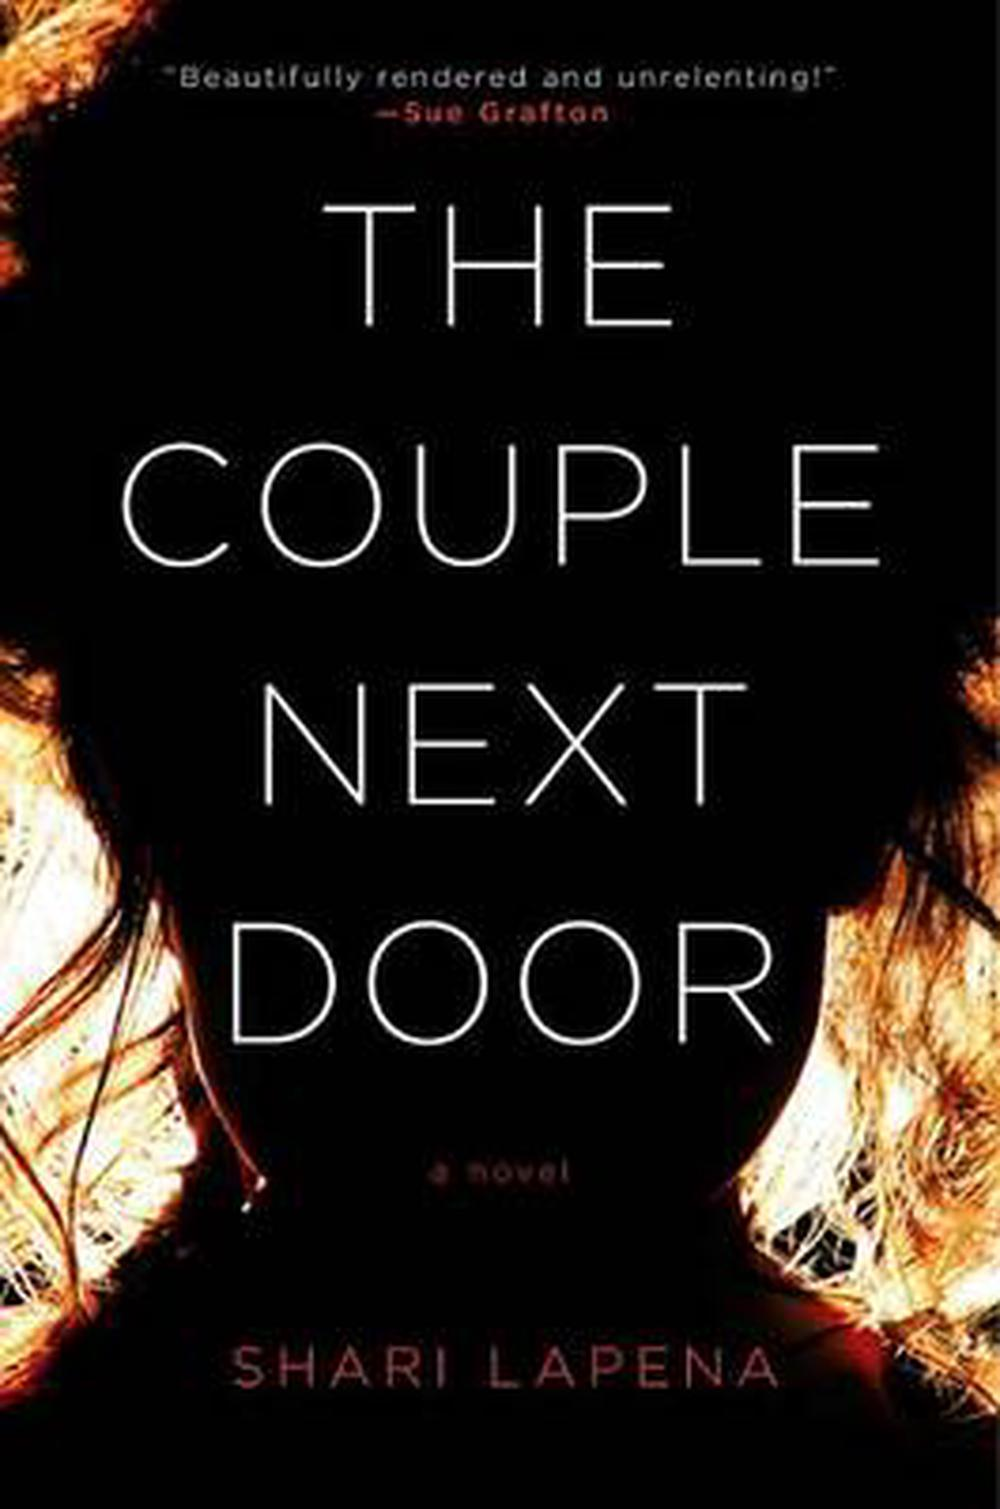 Image result for the couple next door book cover